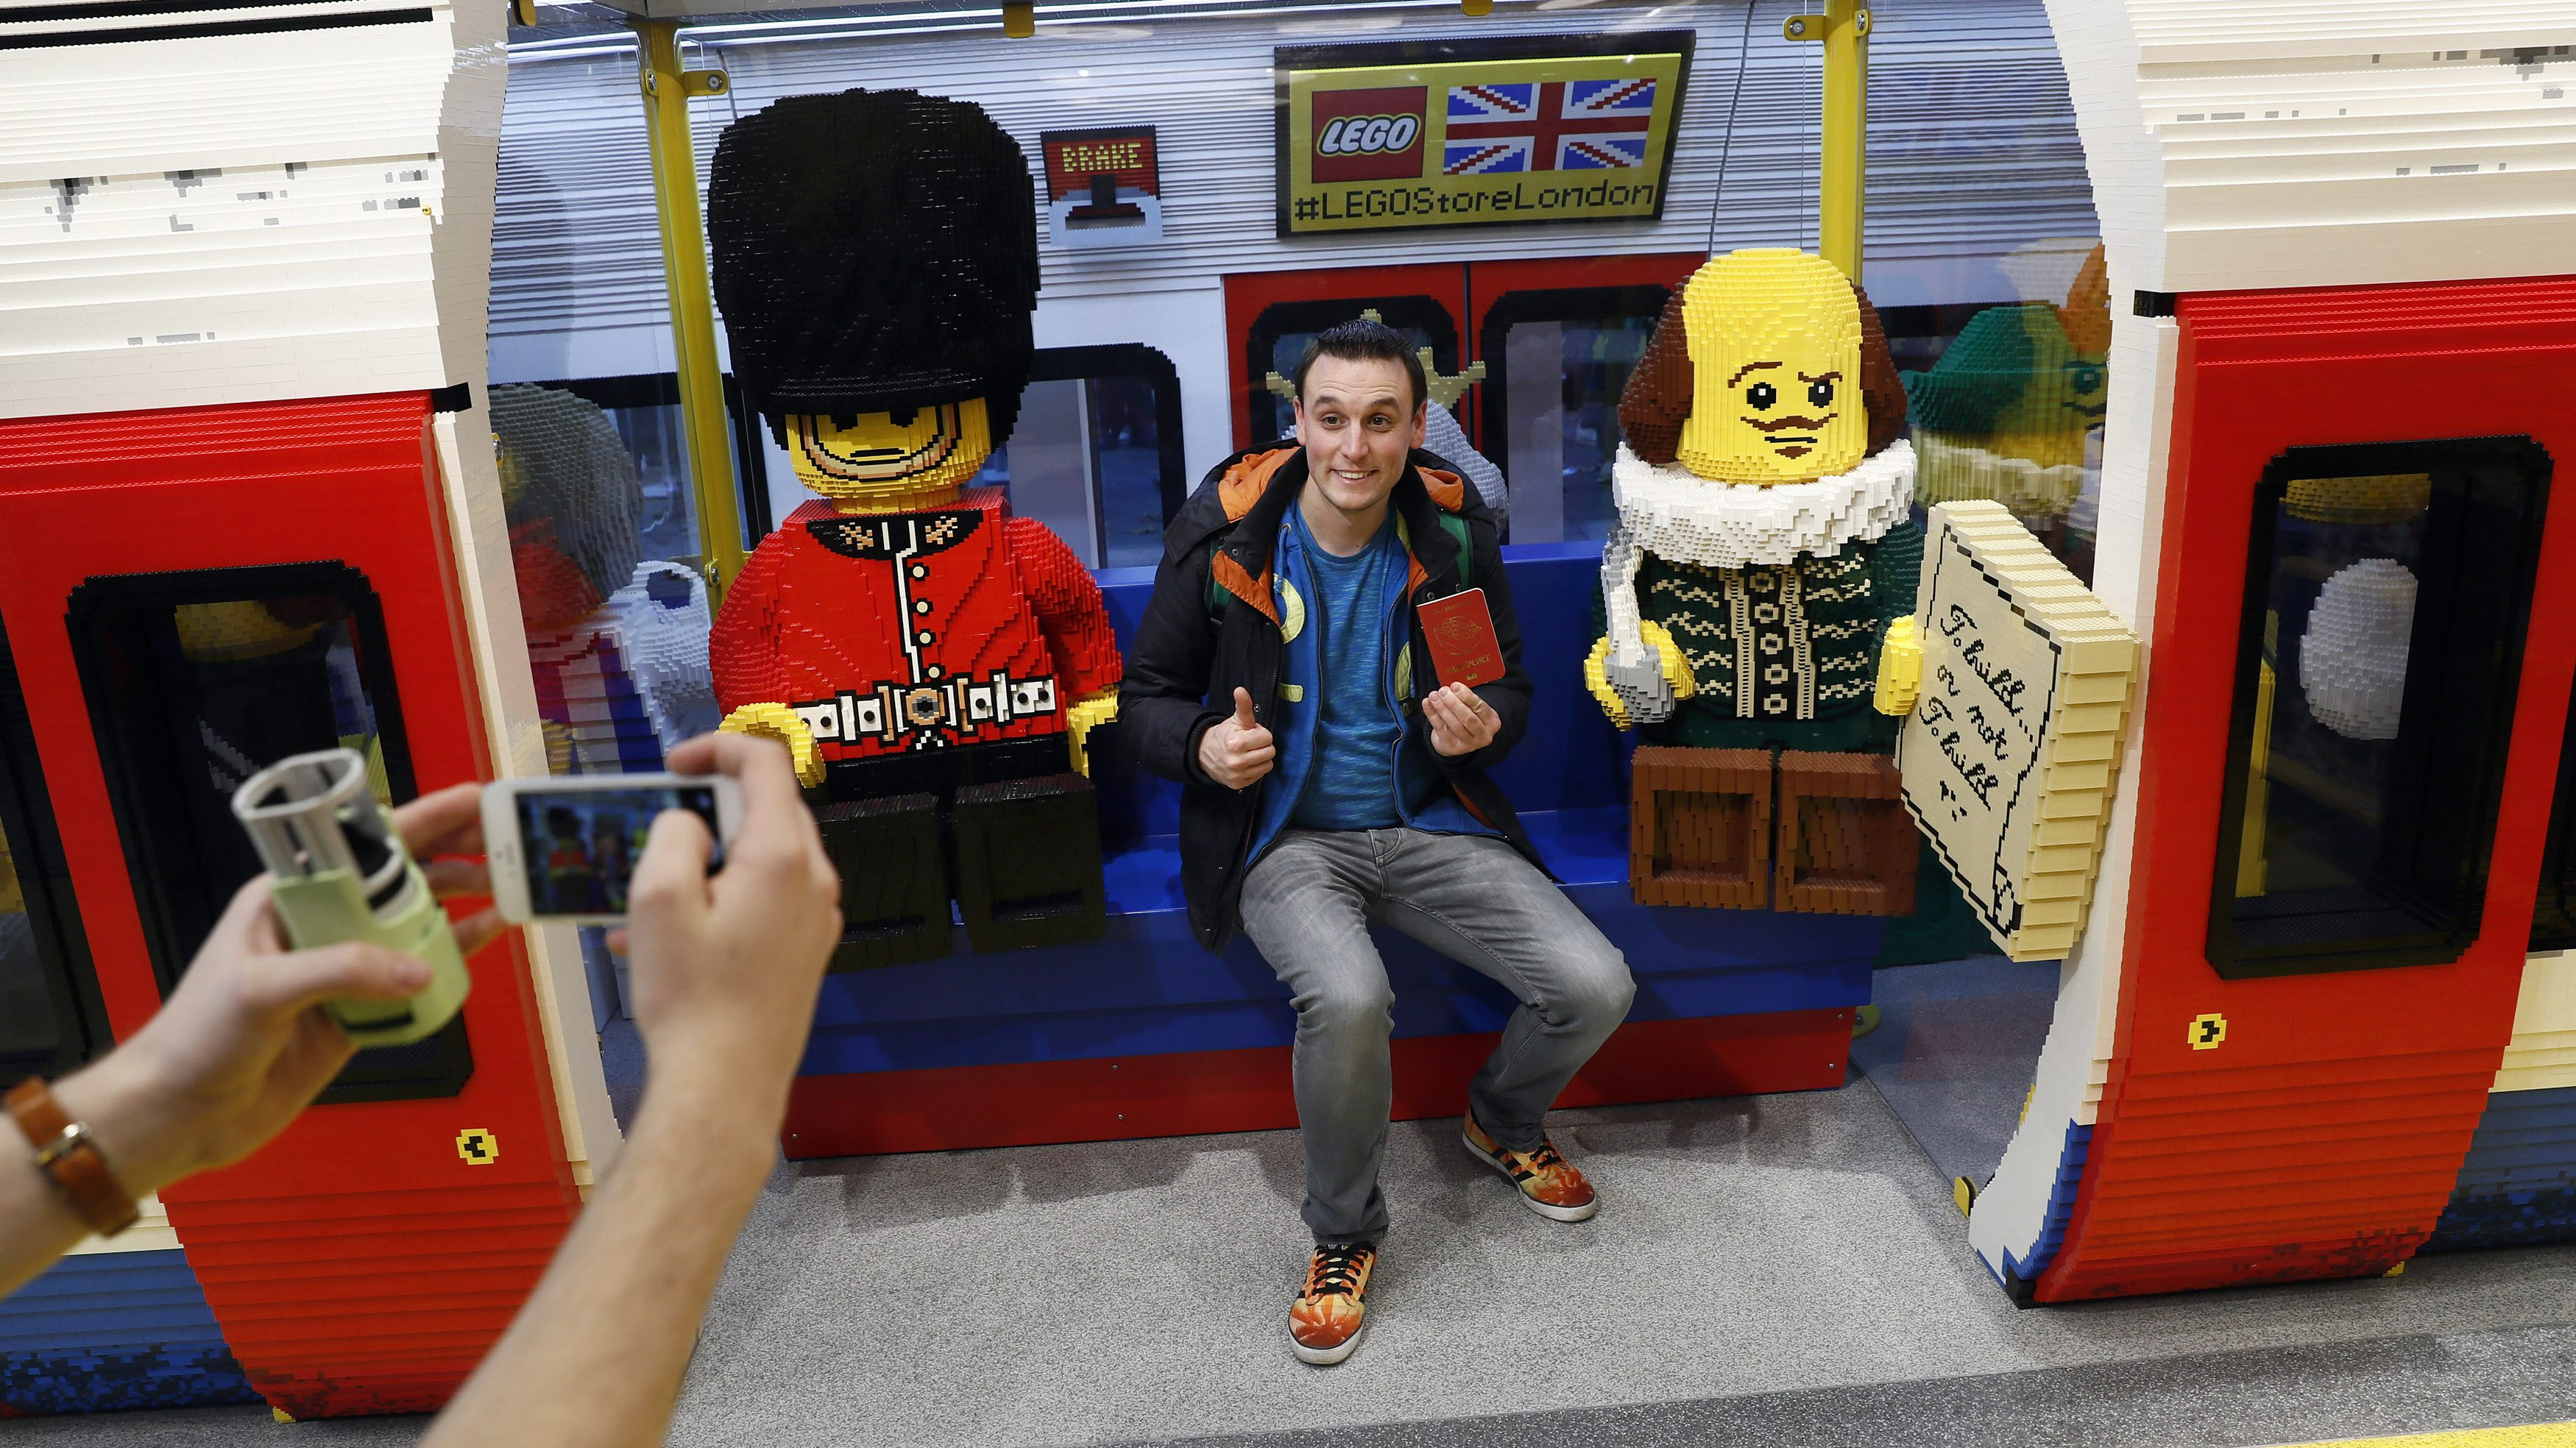 A man poses for a photograph in a Tube carriage made with Lego in the world's biggest Lego store in Leicester Square in London